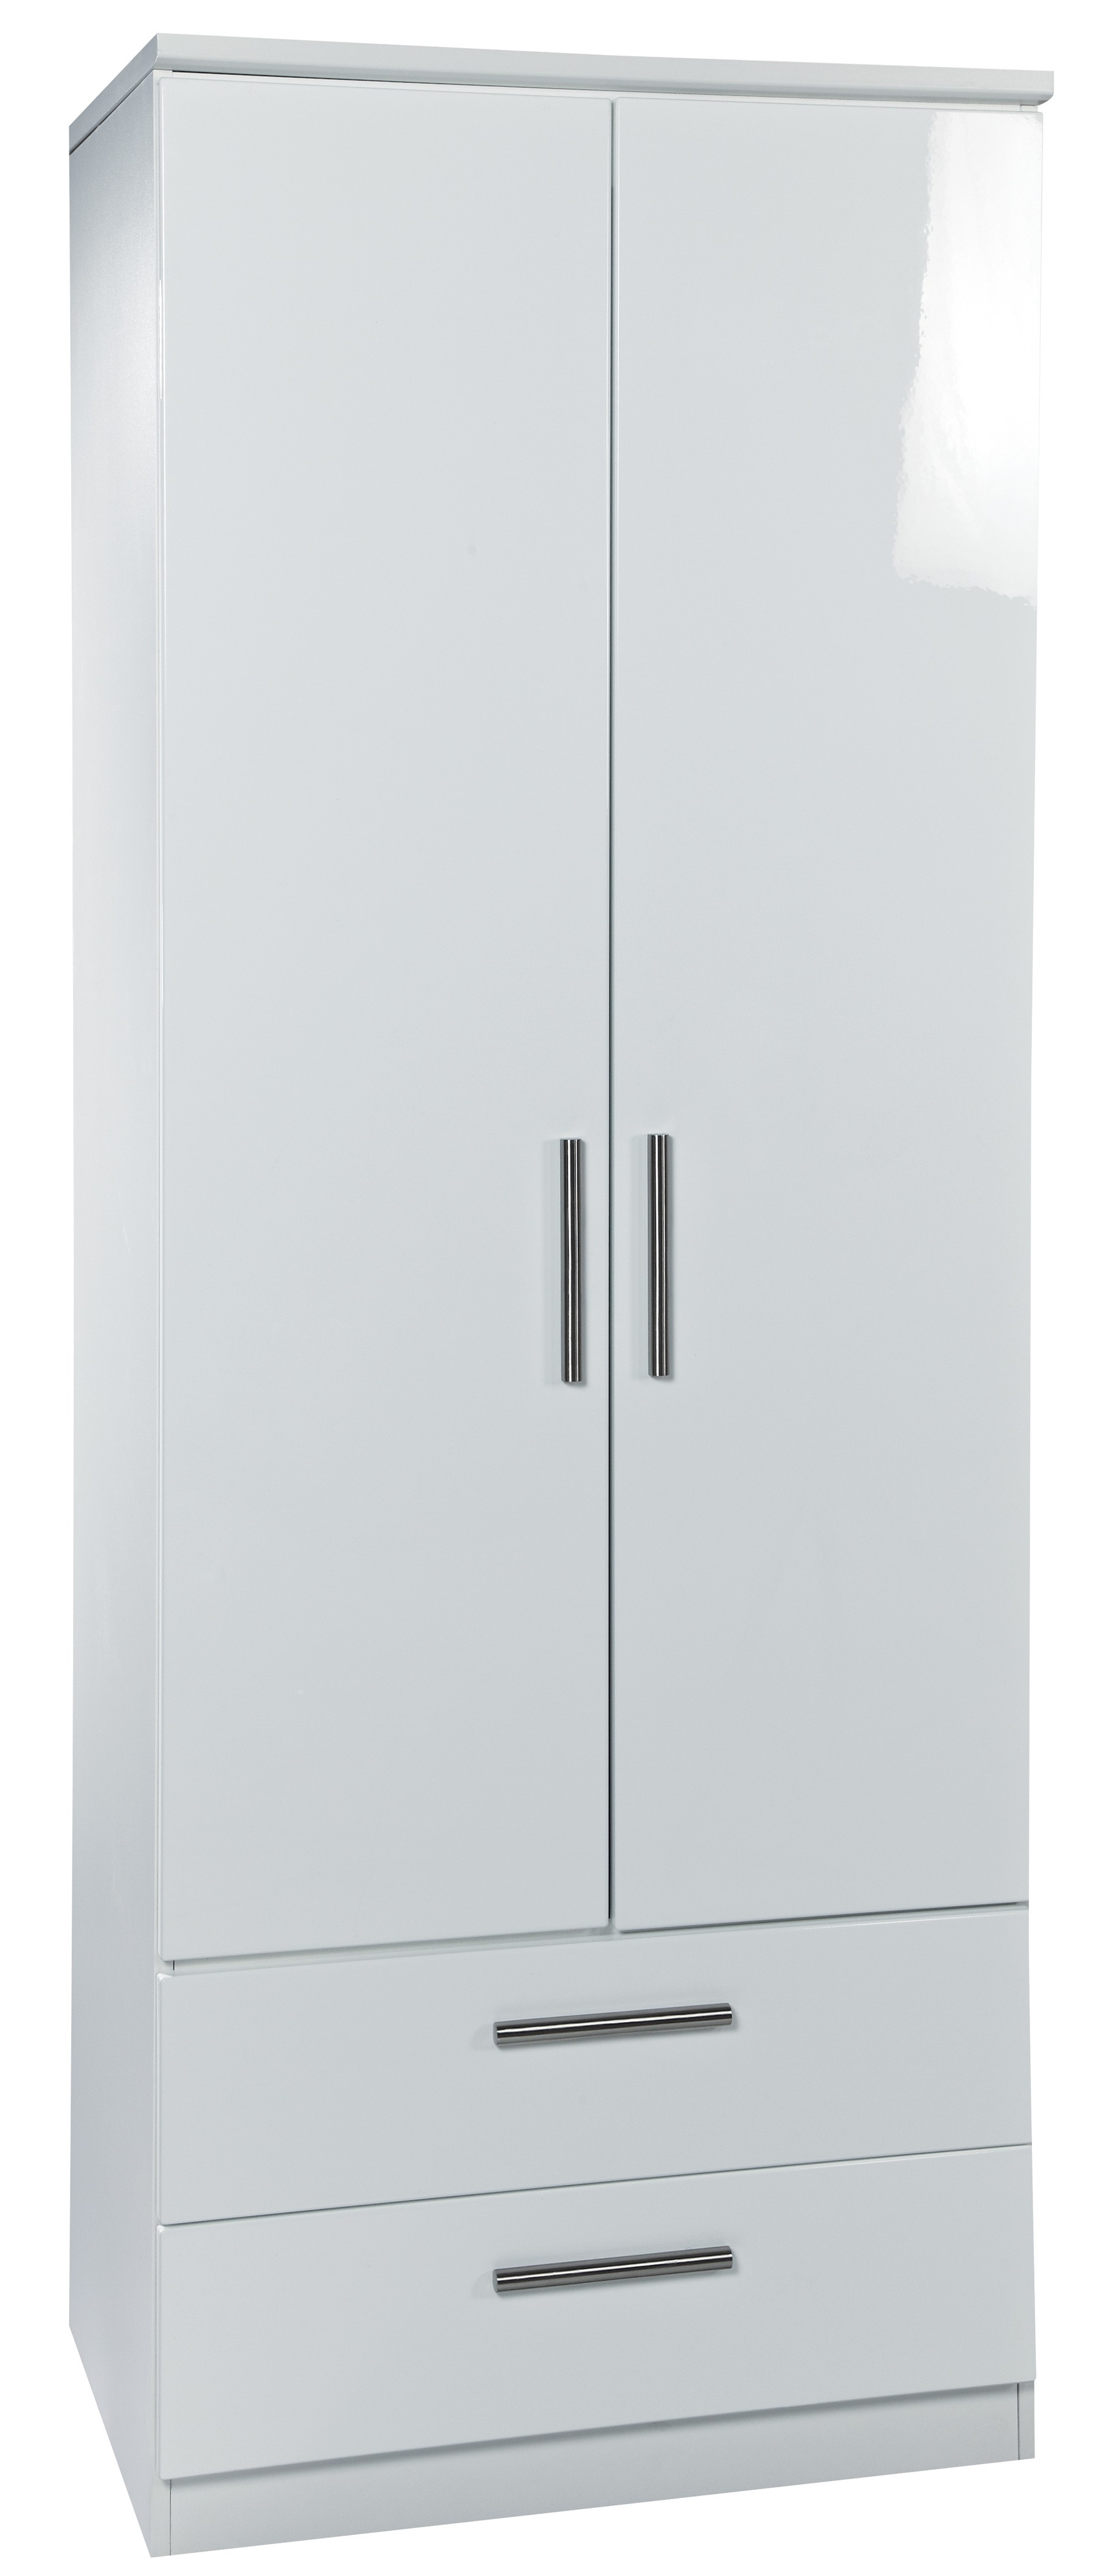 Favorite Black High Gloss Sliding Wardrobe Doors White Wardrobes That Can Inside White High Gloss Wardrobes (View 7 of 15)